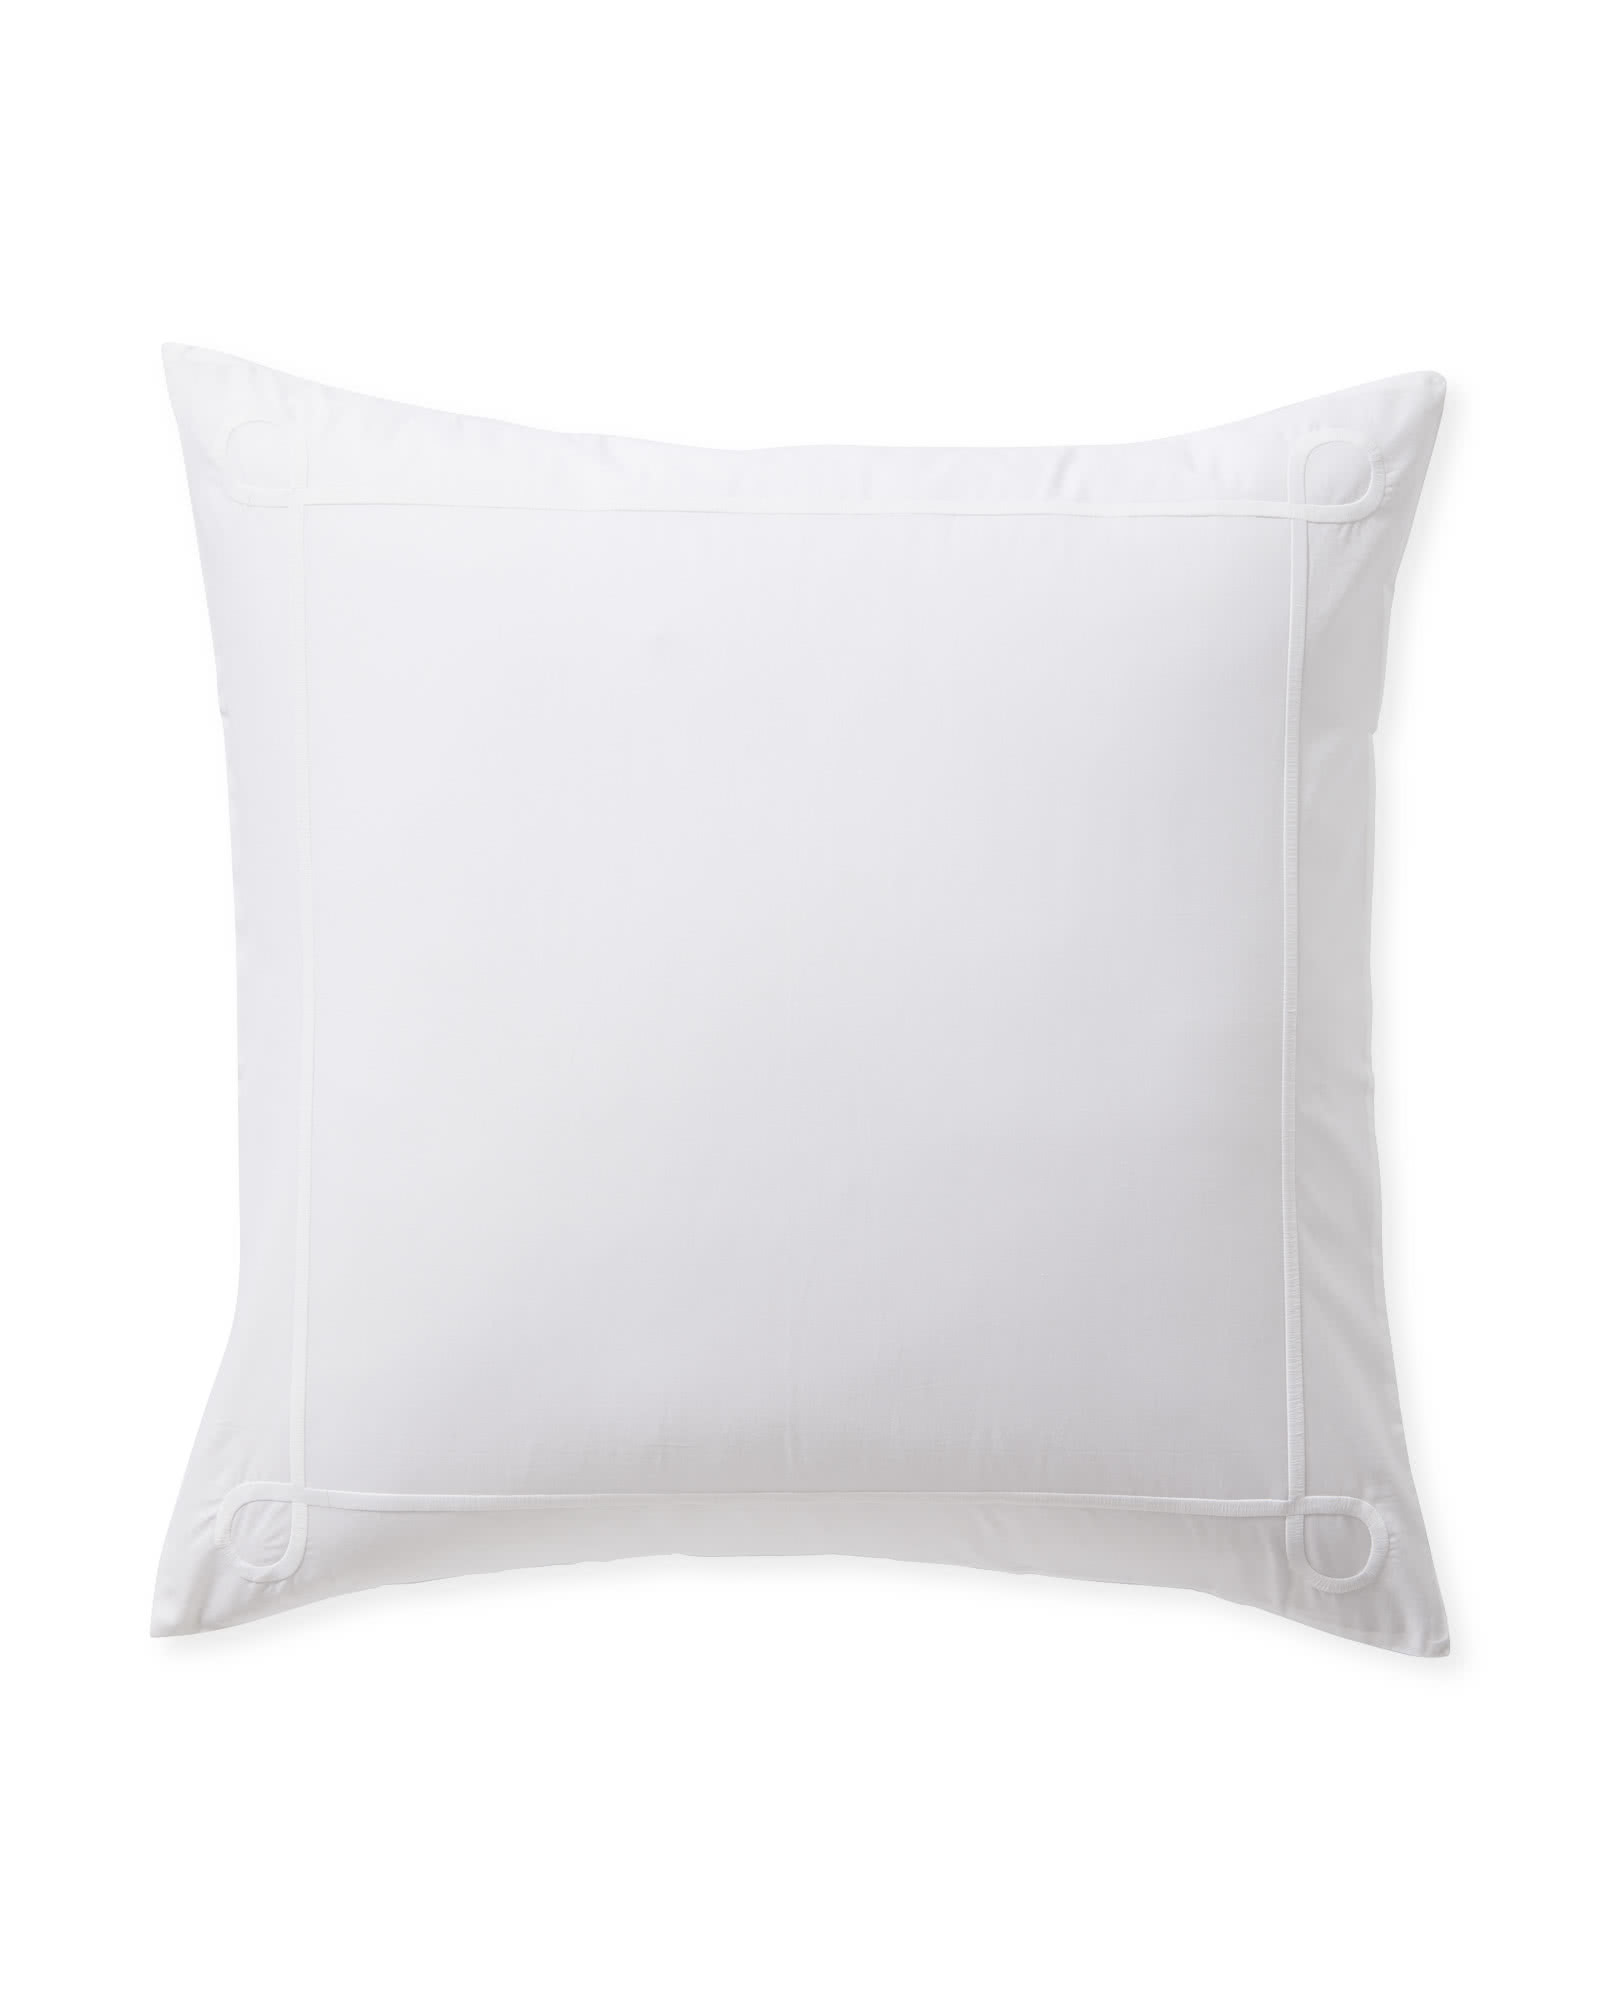 Southport Shams, White